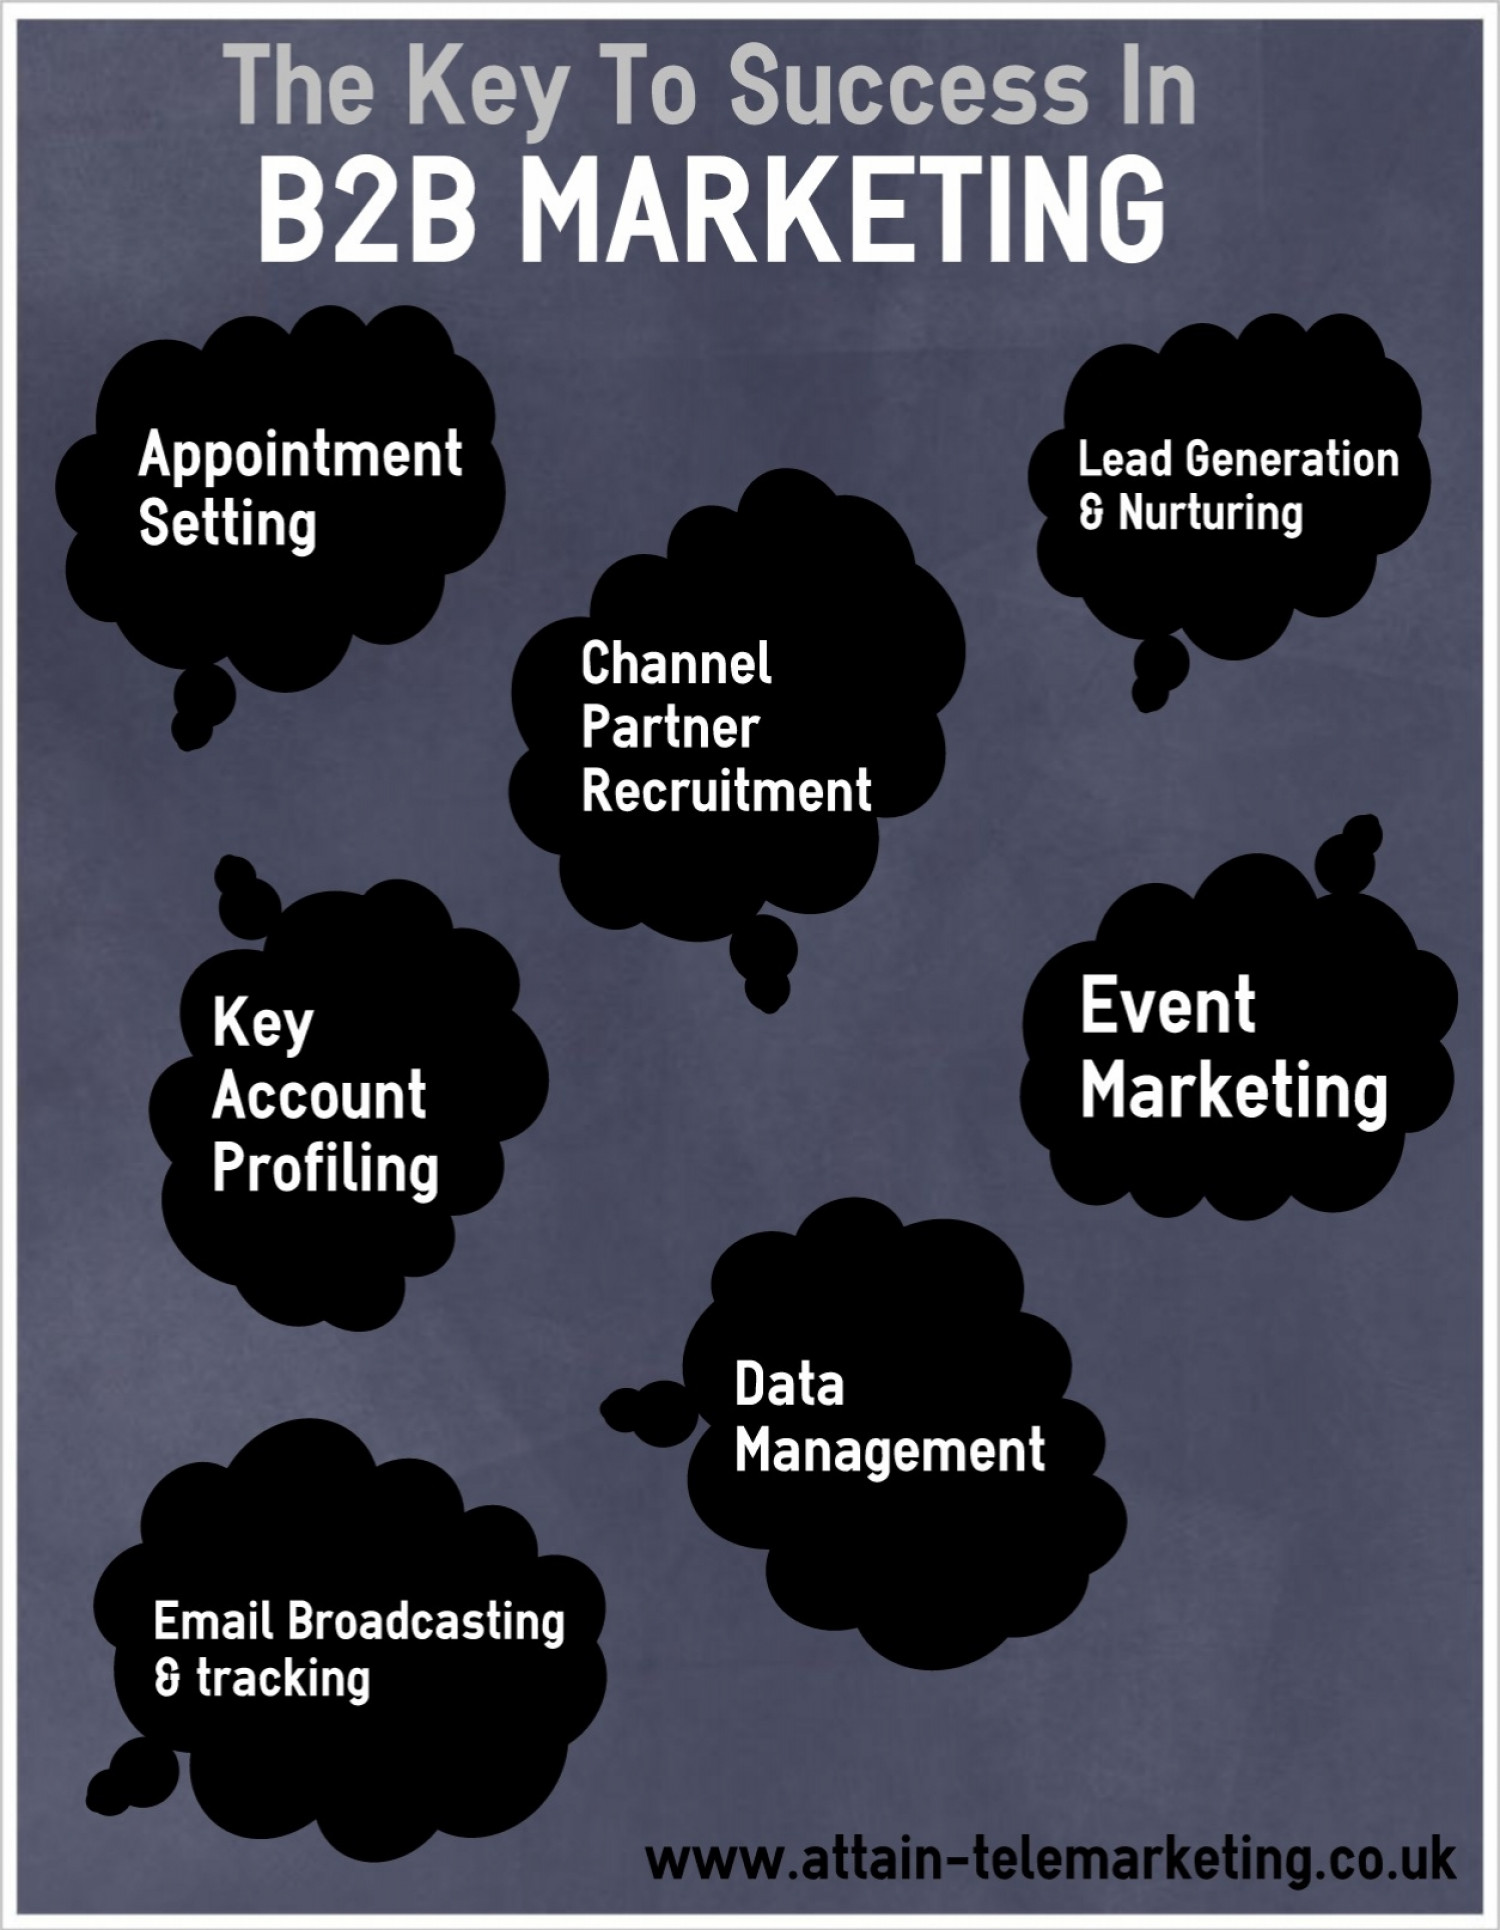 The Key to B2B Marketing Success Infographic